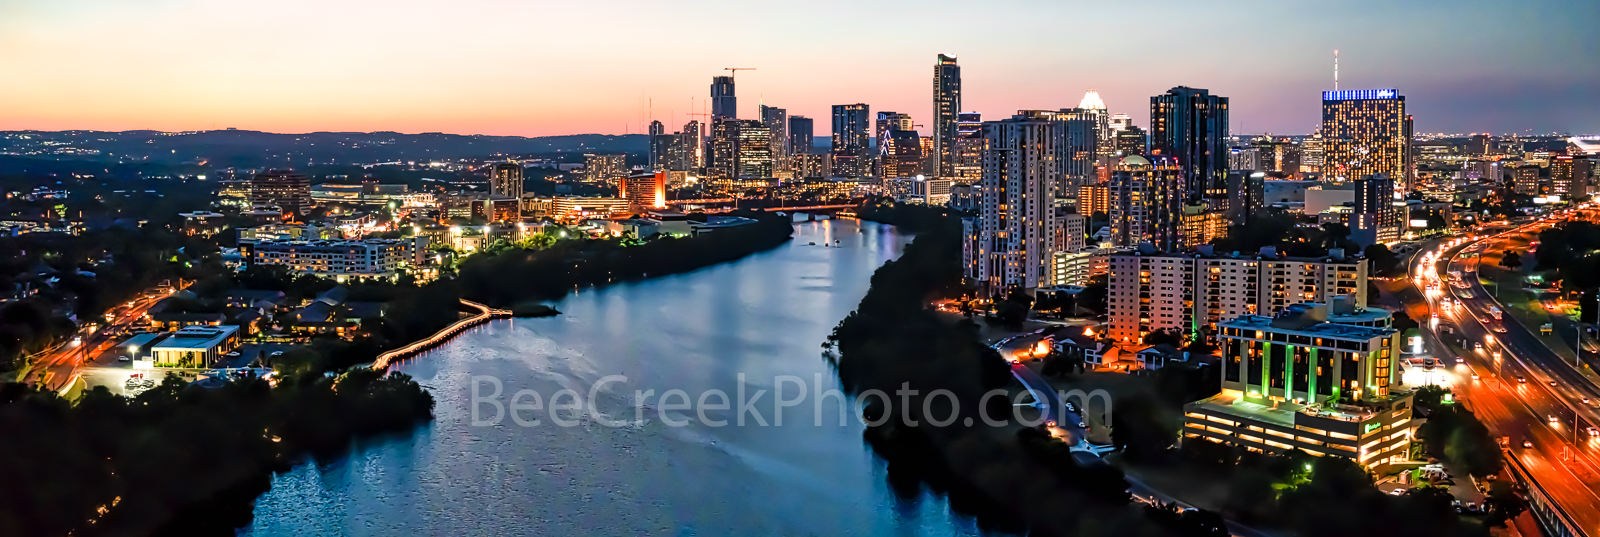 Austin Downtown Night Pano, Austin skyline, Austin cityscape, downtown, shoreline, lady bird lake, town lake, cityscape, Independent, Austonian, buildings,pano, panorama, aerial, drone,